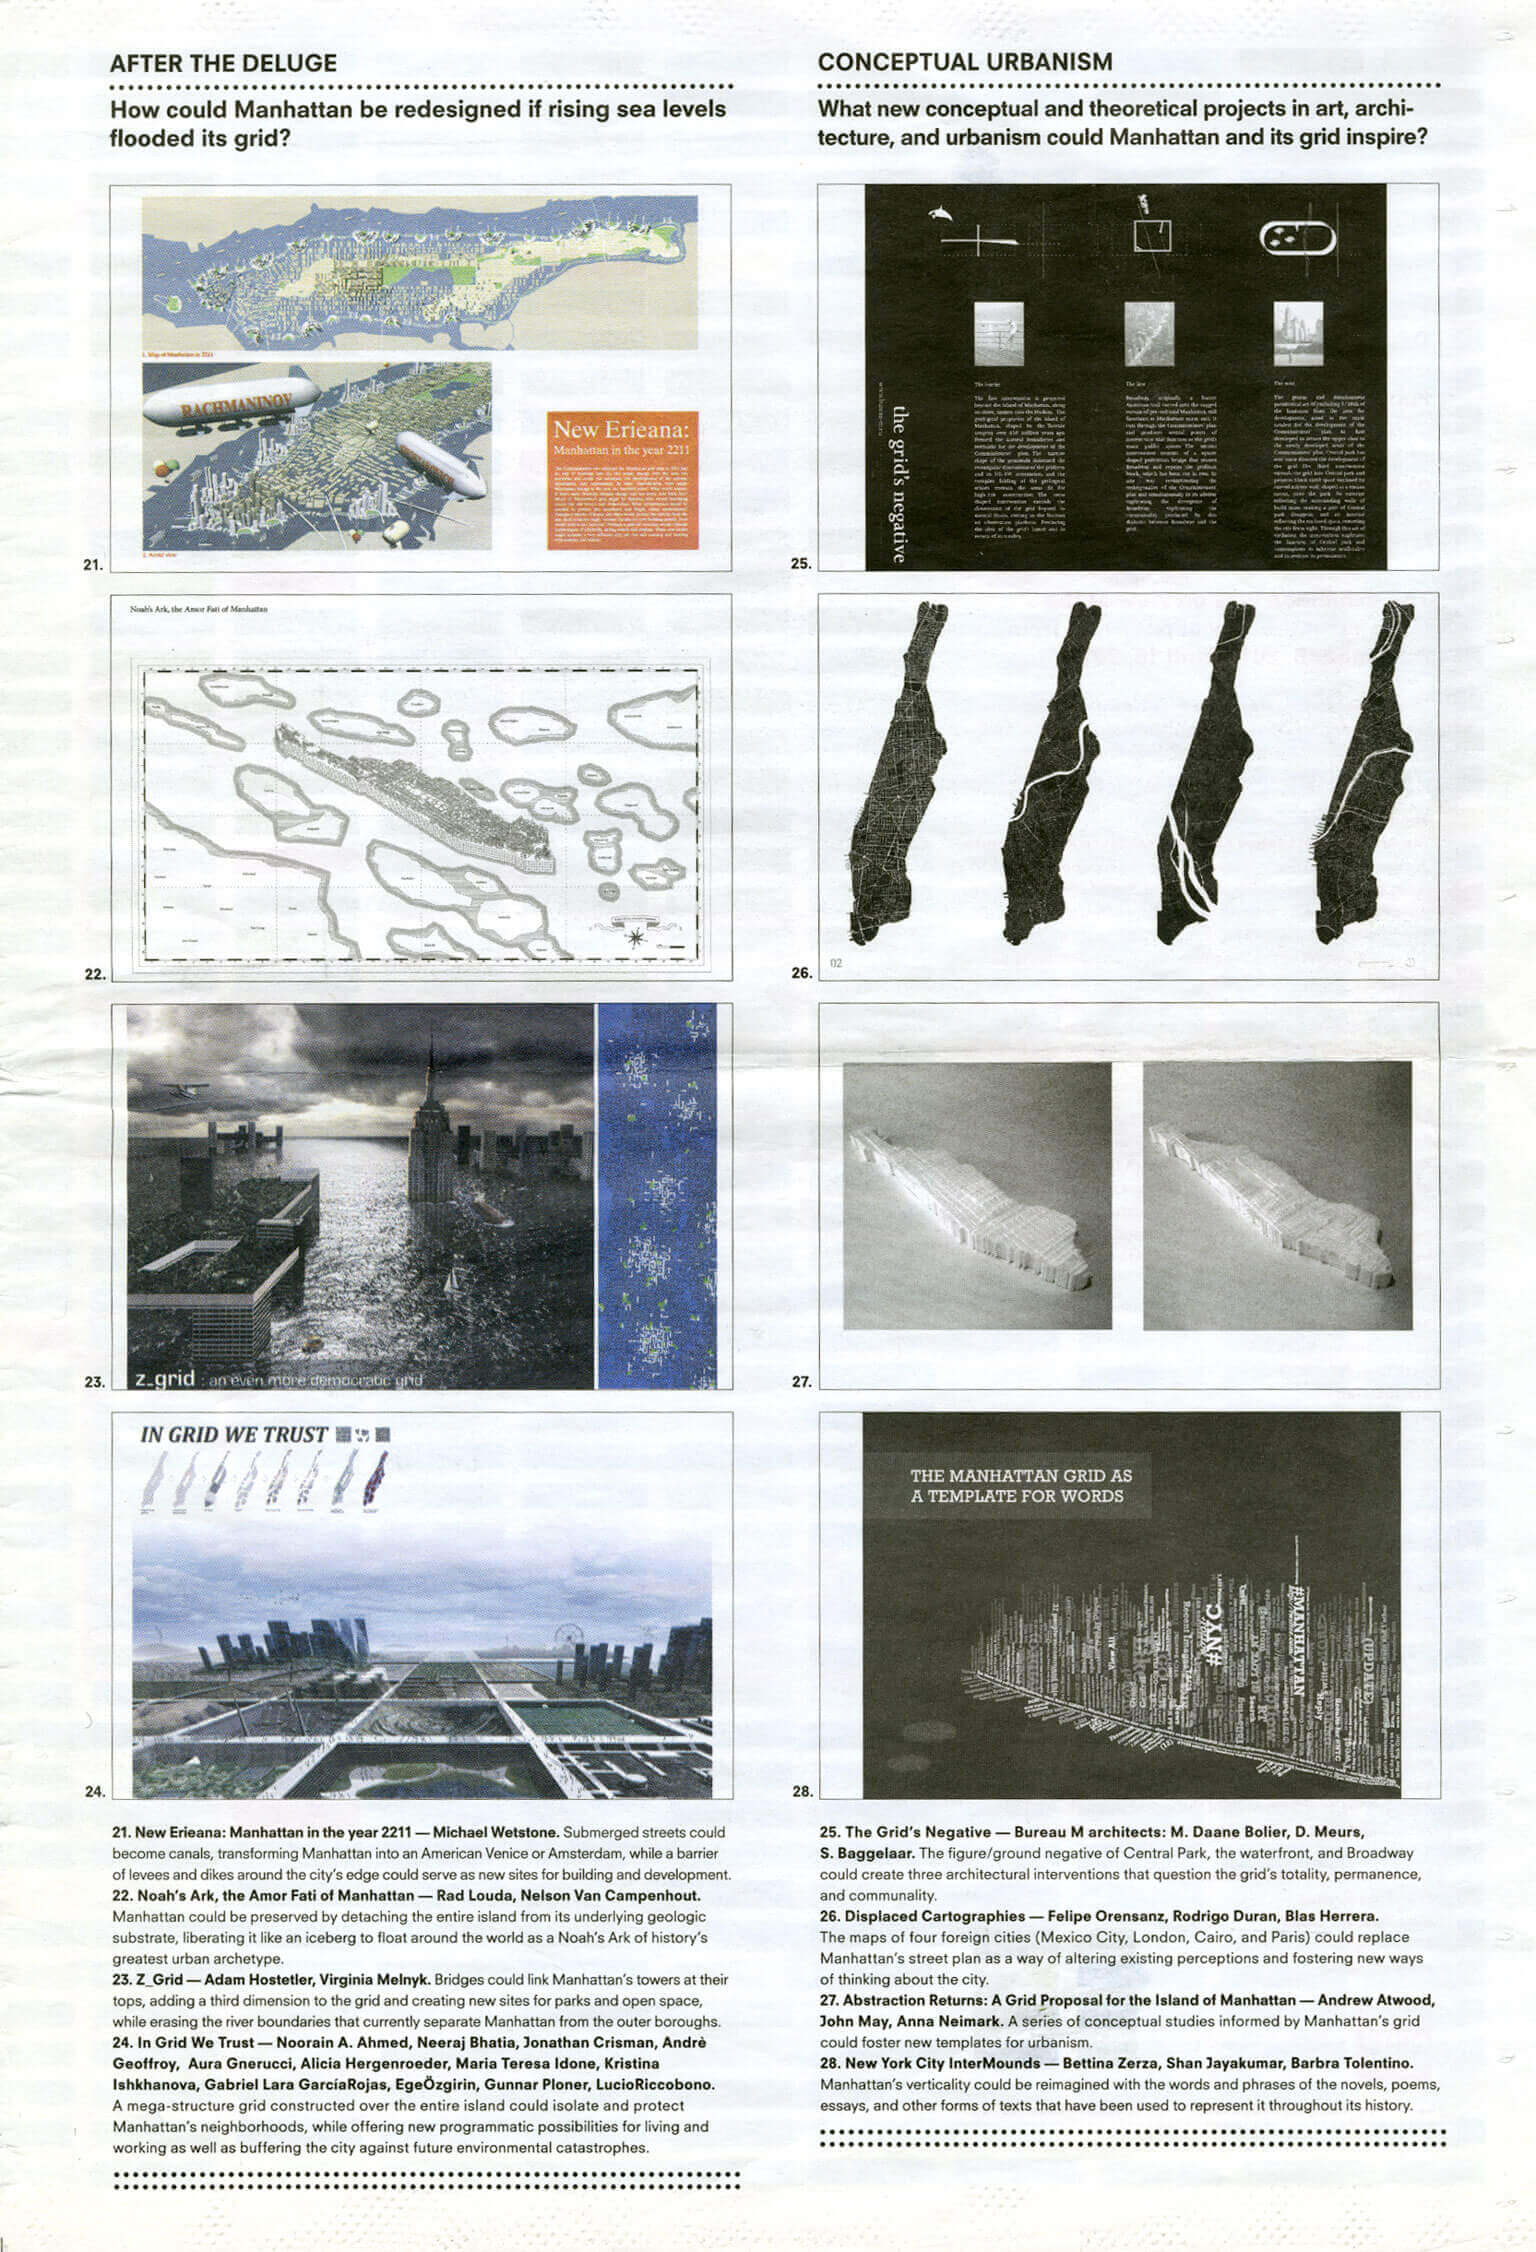 The Unfinished Grid: Design Speculations For Manhattan Exhibition